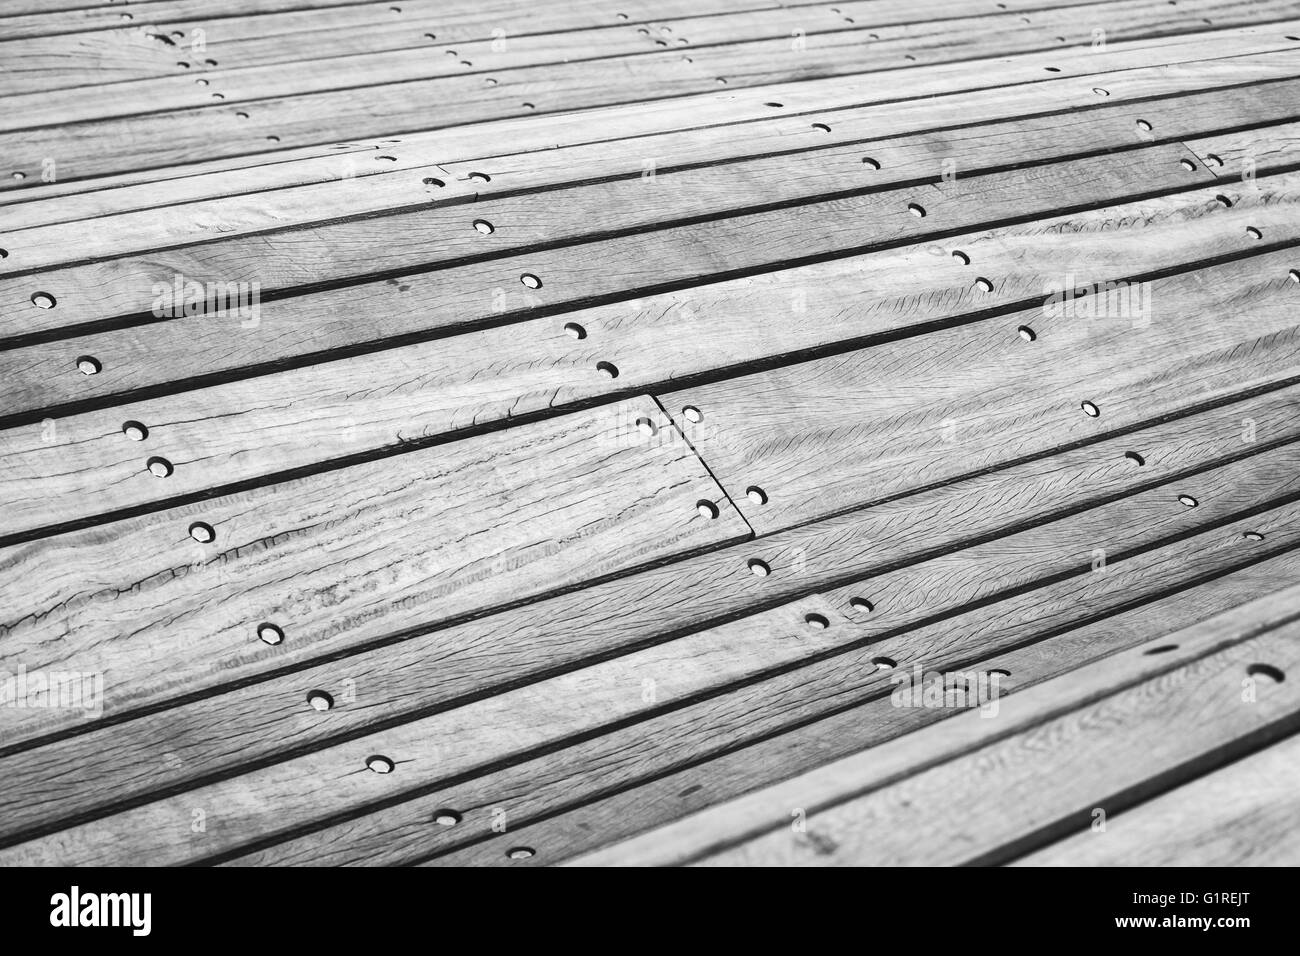 Abstract curved construction made of gray wooden planks, selective focus - Stock Image